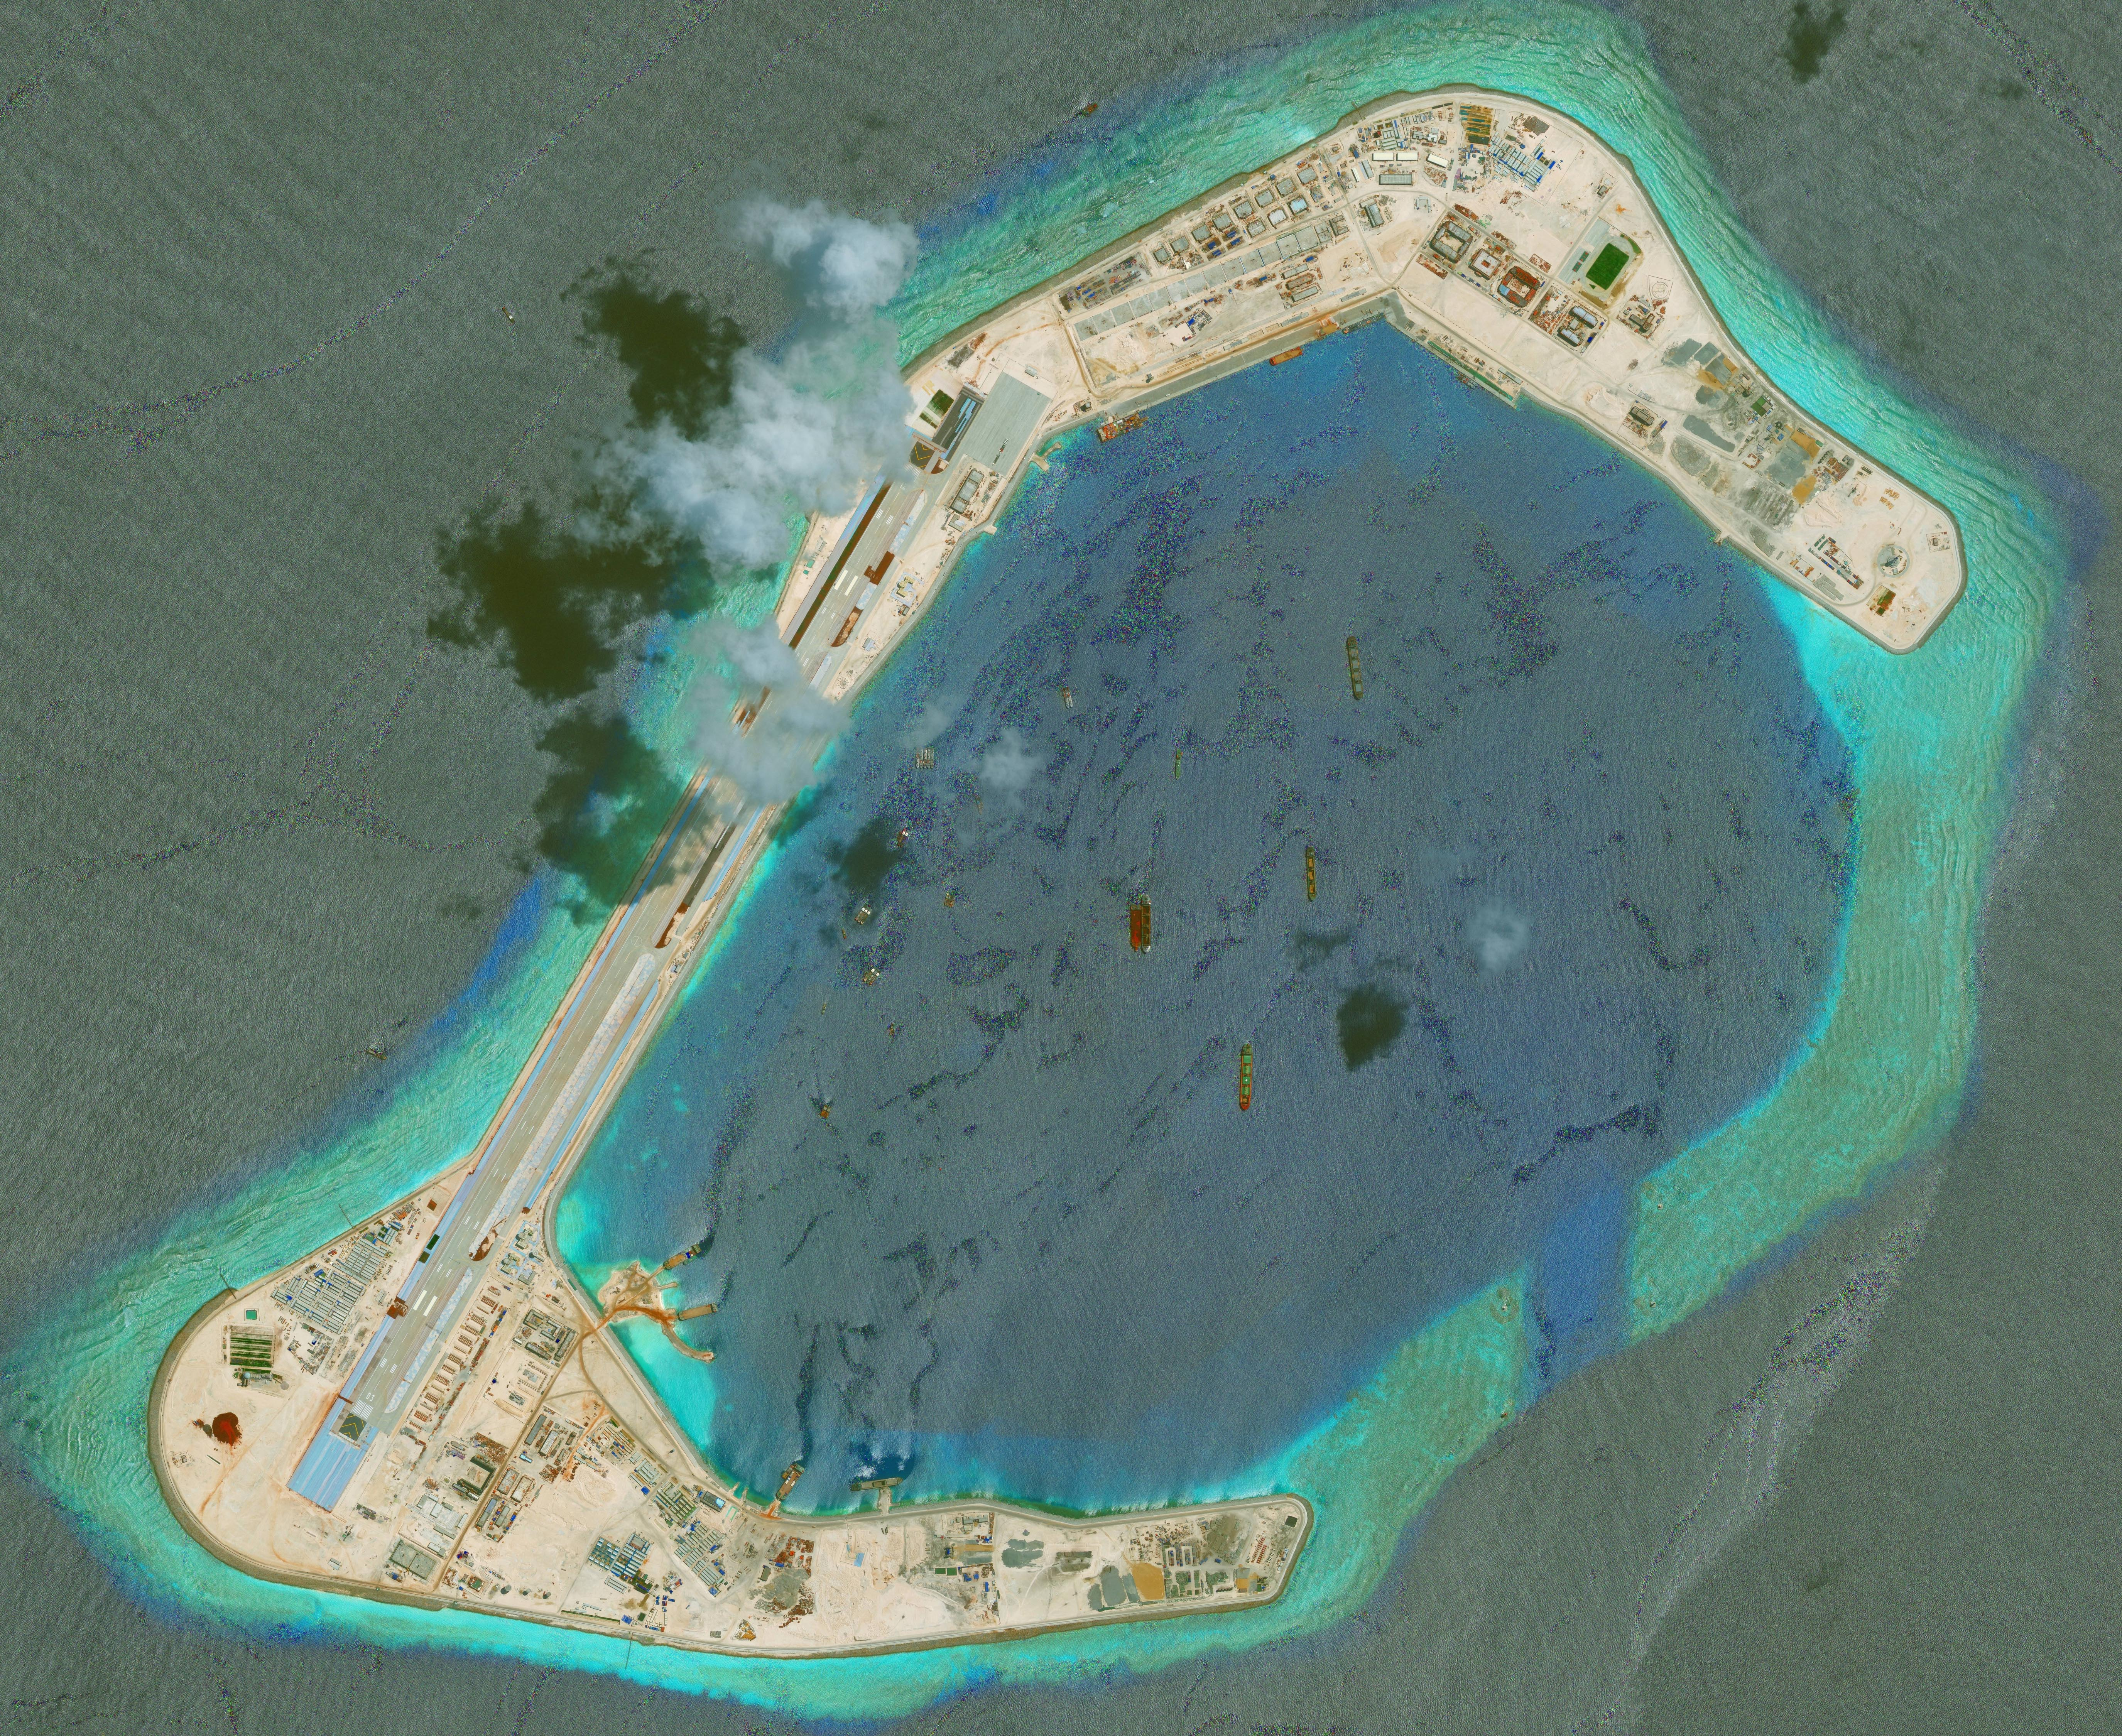 DigitalGlobe imagery of the Subi Reef in the South China Sea, a part of the Spratly Islands group.